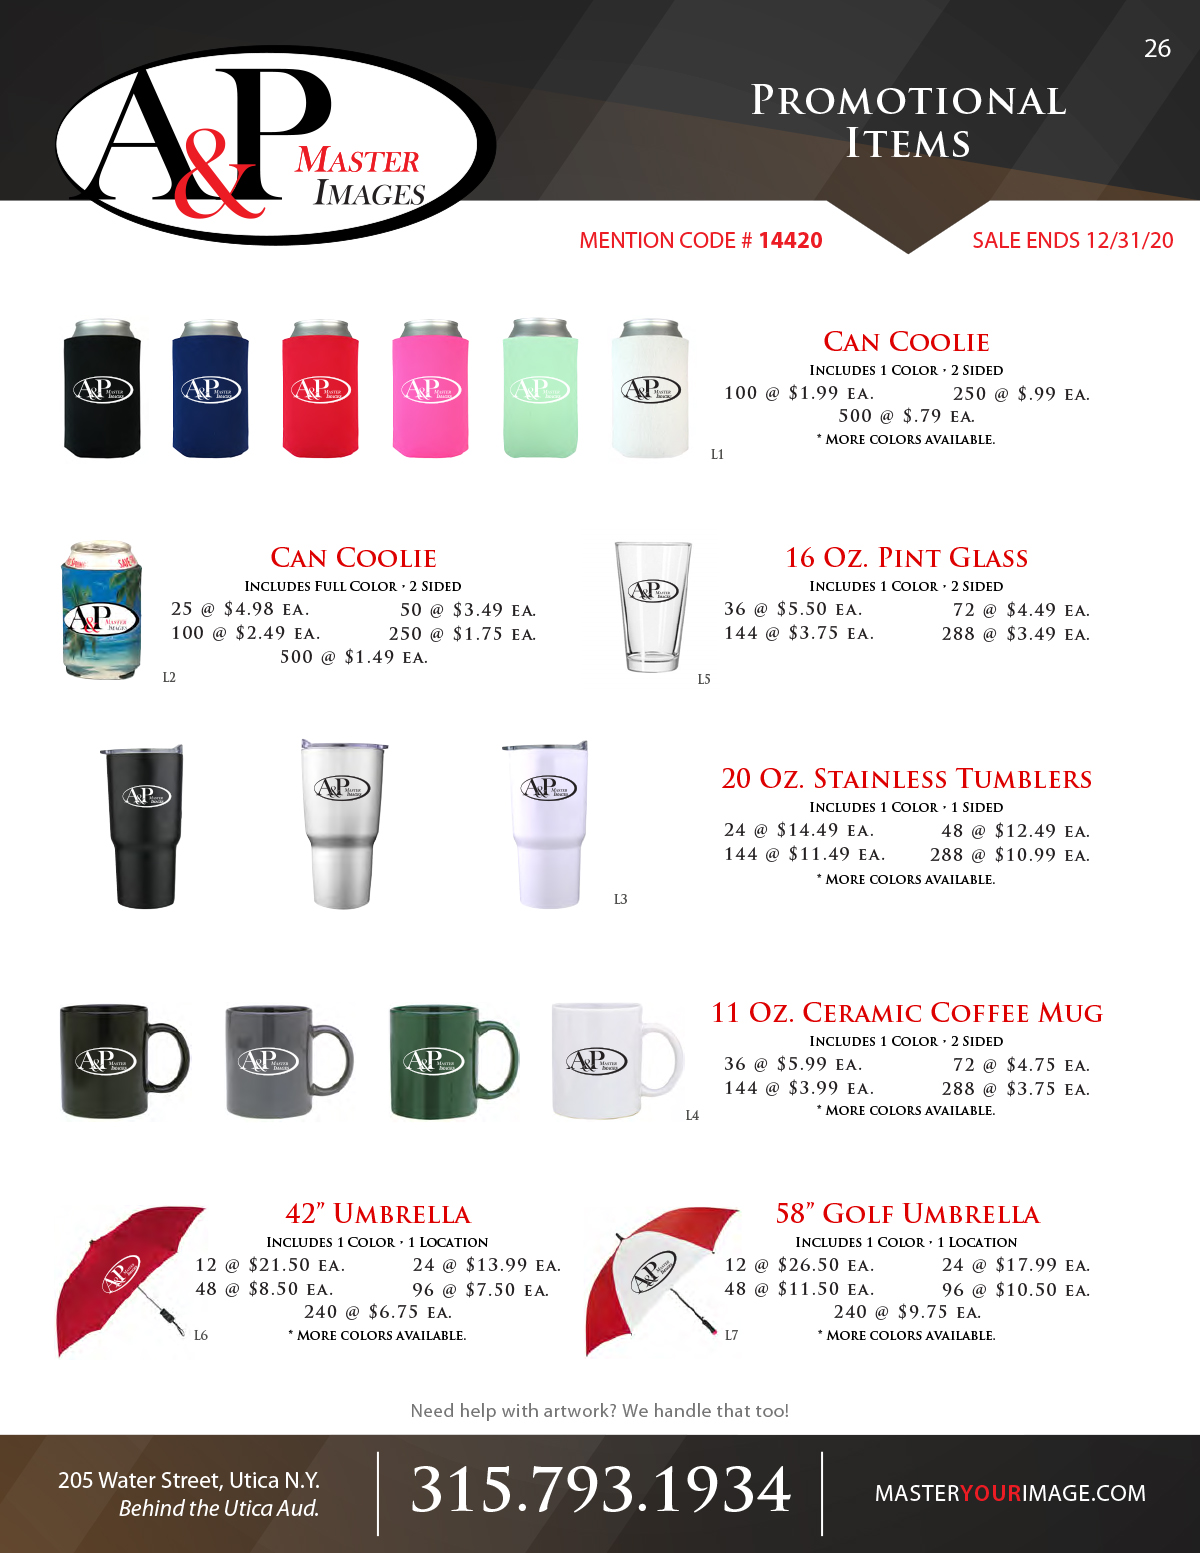 Sales Flyers - Promotional 05